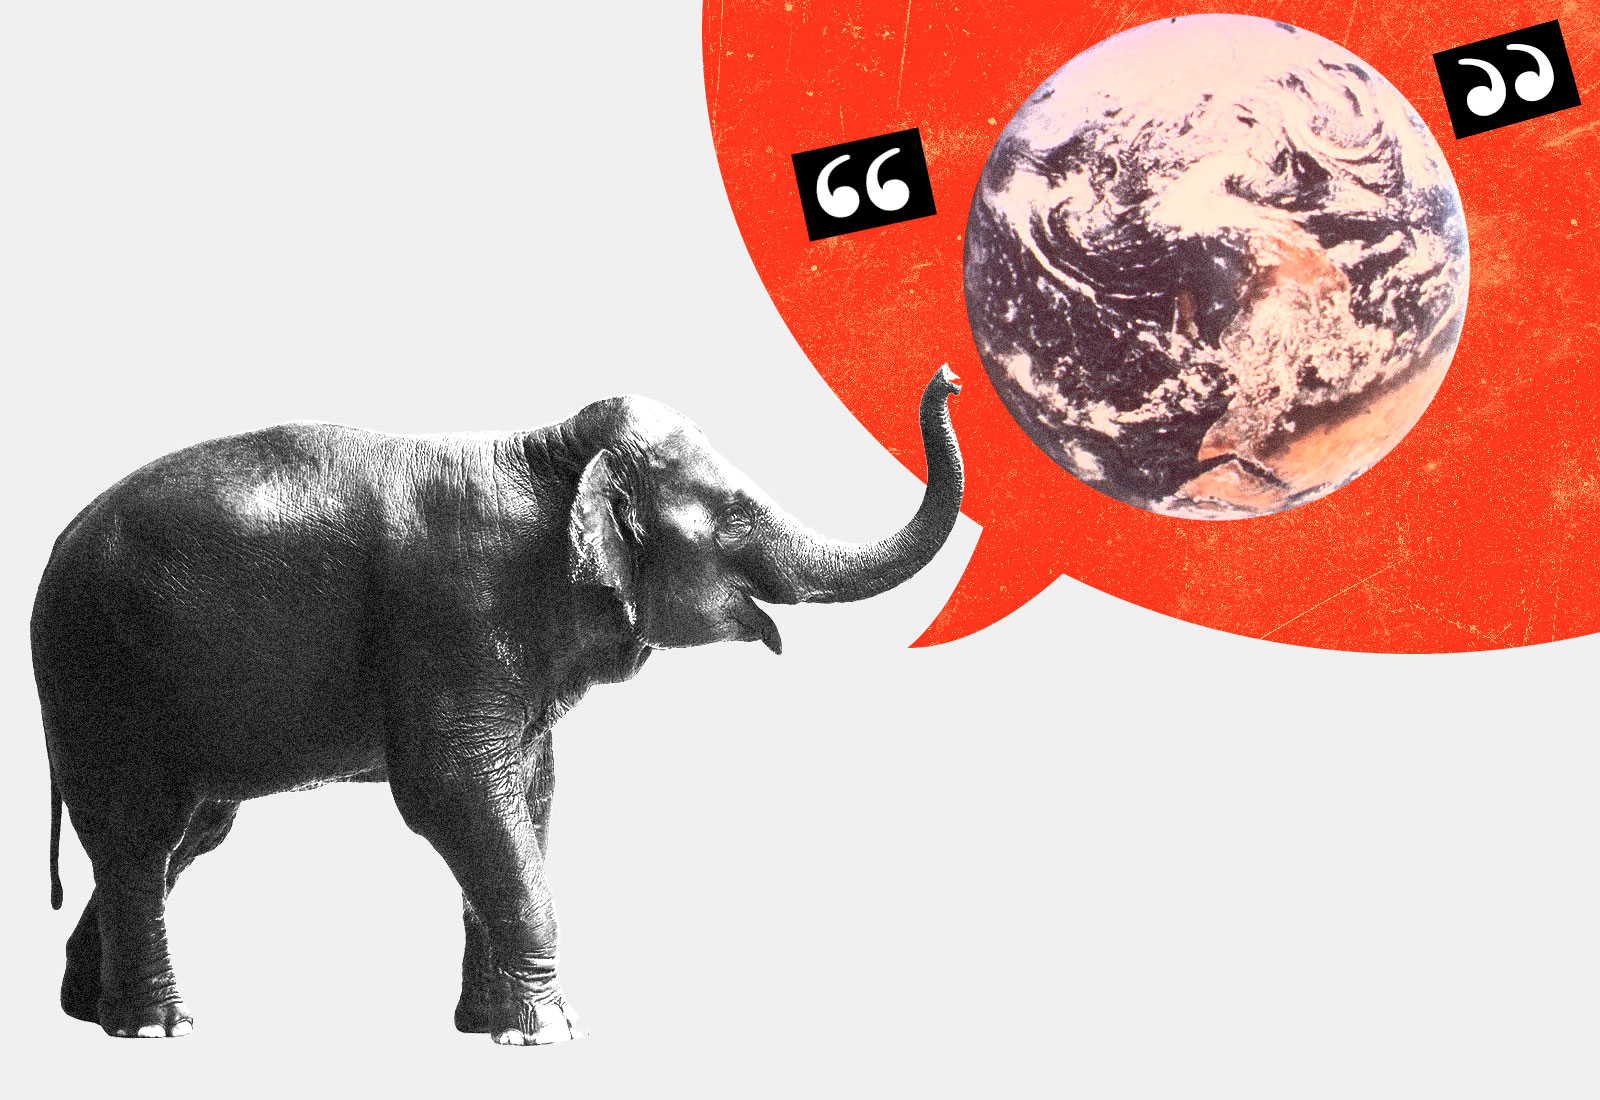 Collage: An elephant with a large red speech bubble with an Earth in quotes